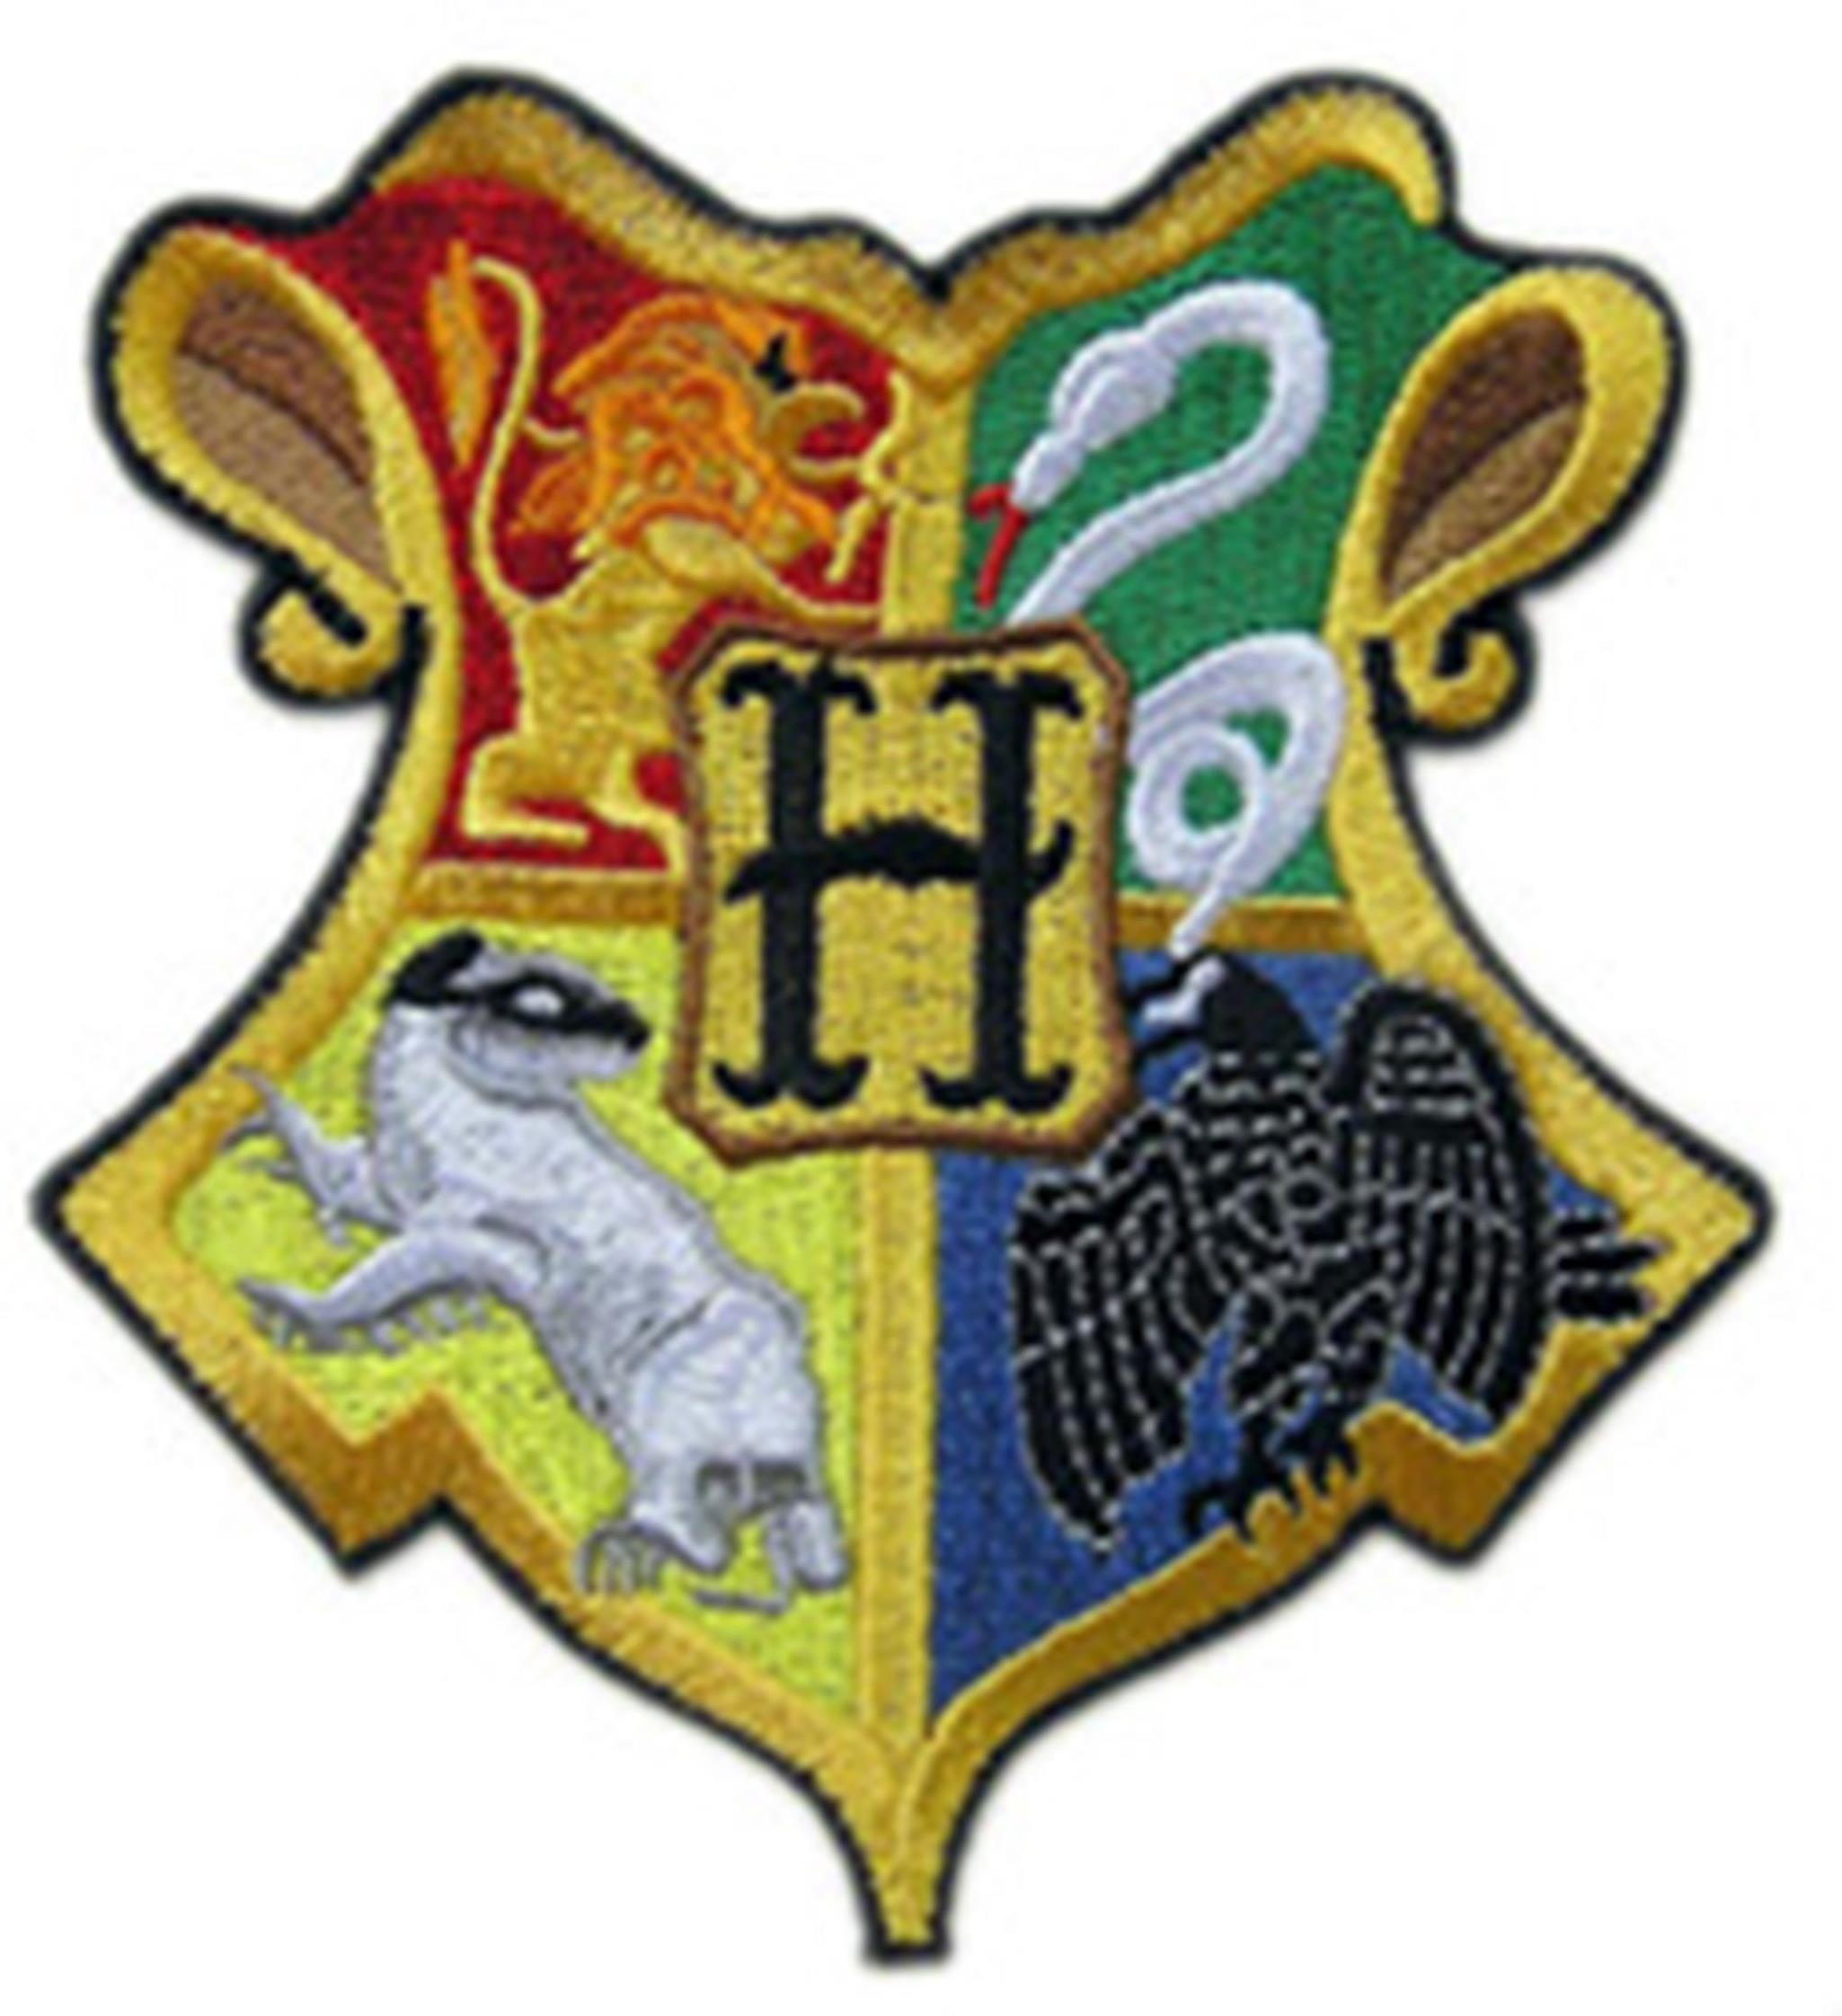 "Superheroes Harry Potter Gryffindor House Crest Hogwart 3.5"" Embroidered Iron/Sew-on Applique Patch"